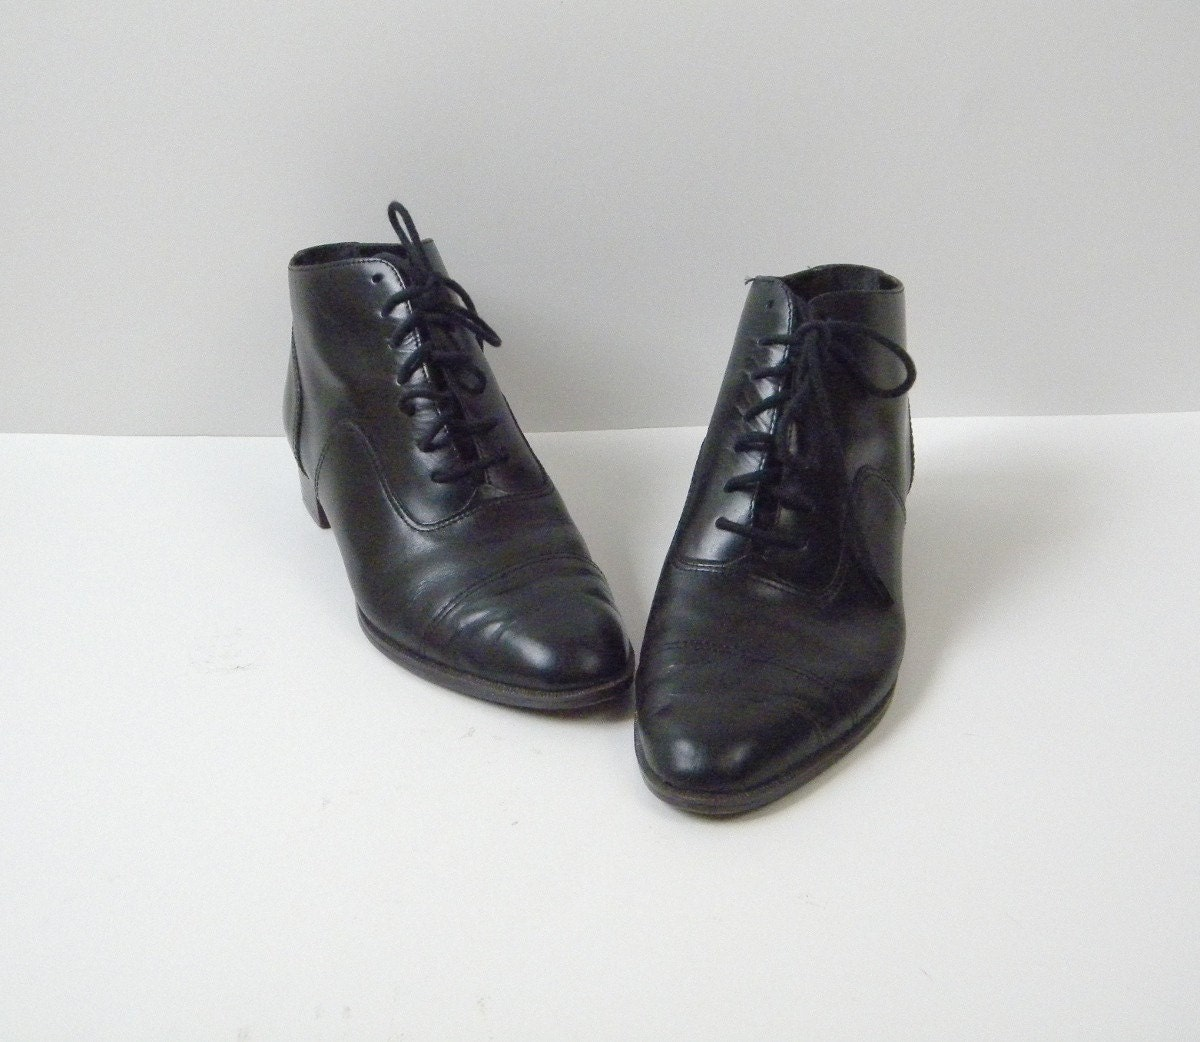 Vintage Black Leather Oxford Ankle Boots Size 8M